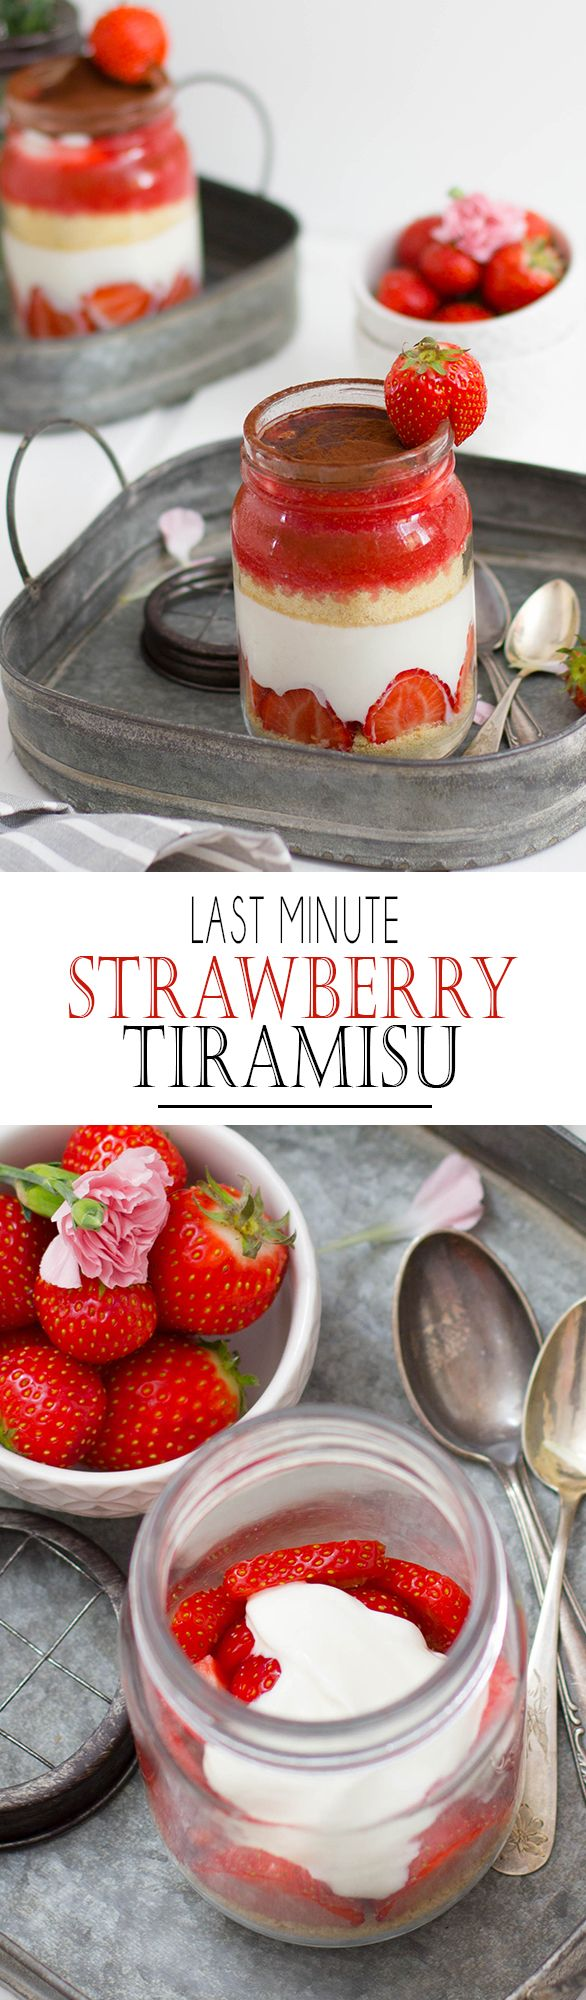 Last Minute Mother's Day Strawberry Tiramisu with Yoghurt | Schnelles Muttertags Erdbeer Tiramisu mit Joghurt